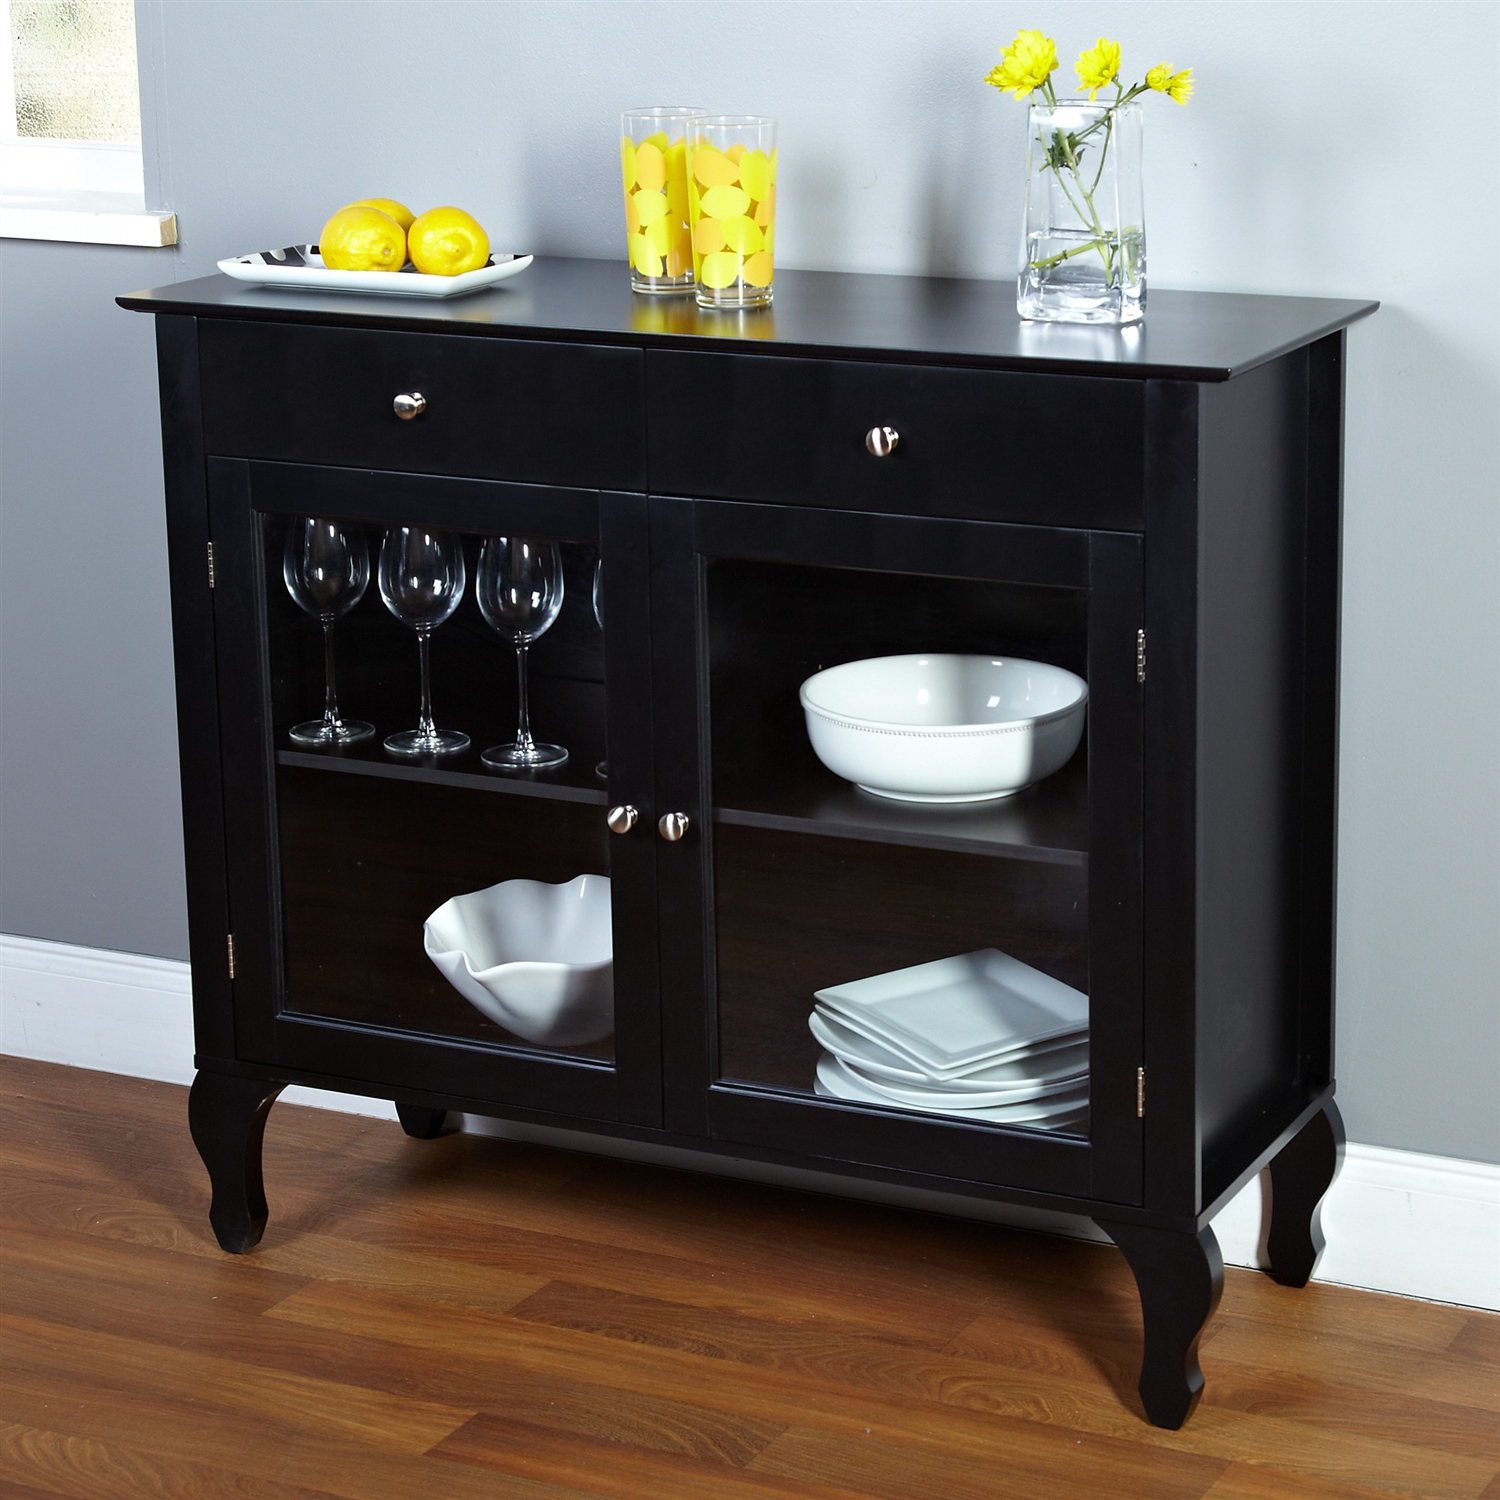 Black Dining Room Buffet Sideboard Server Cabinet With Gl Doors Fastfurnishings